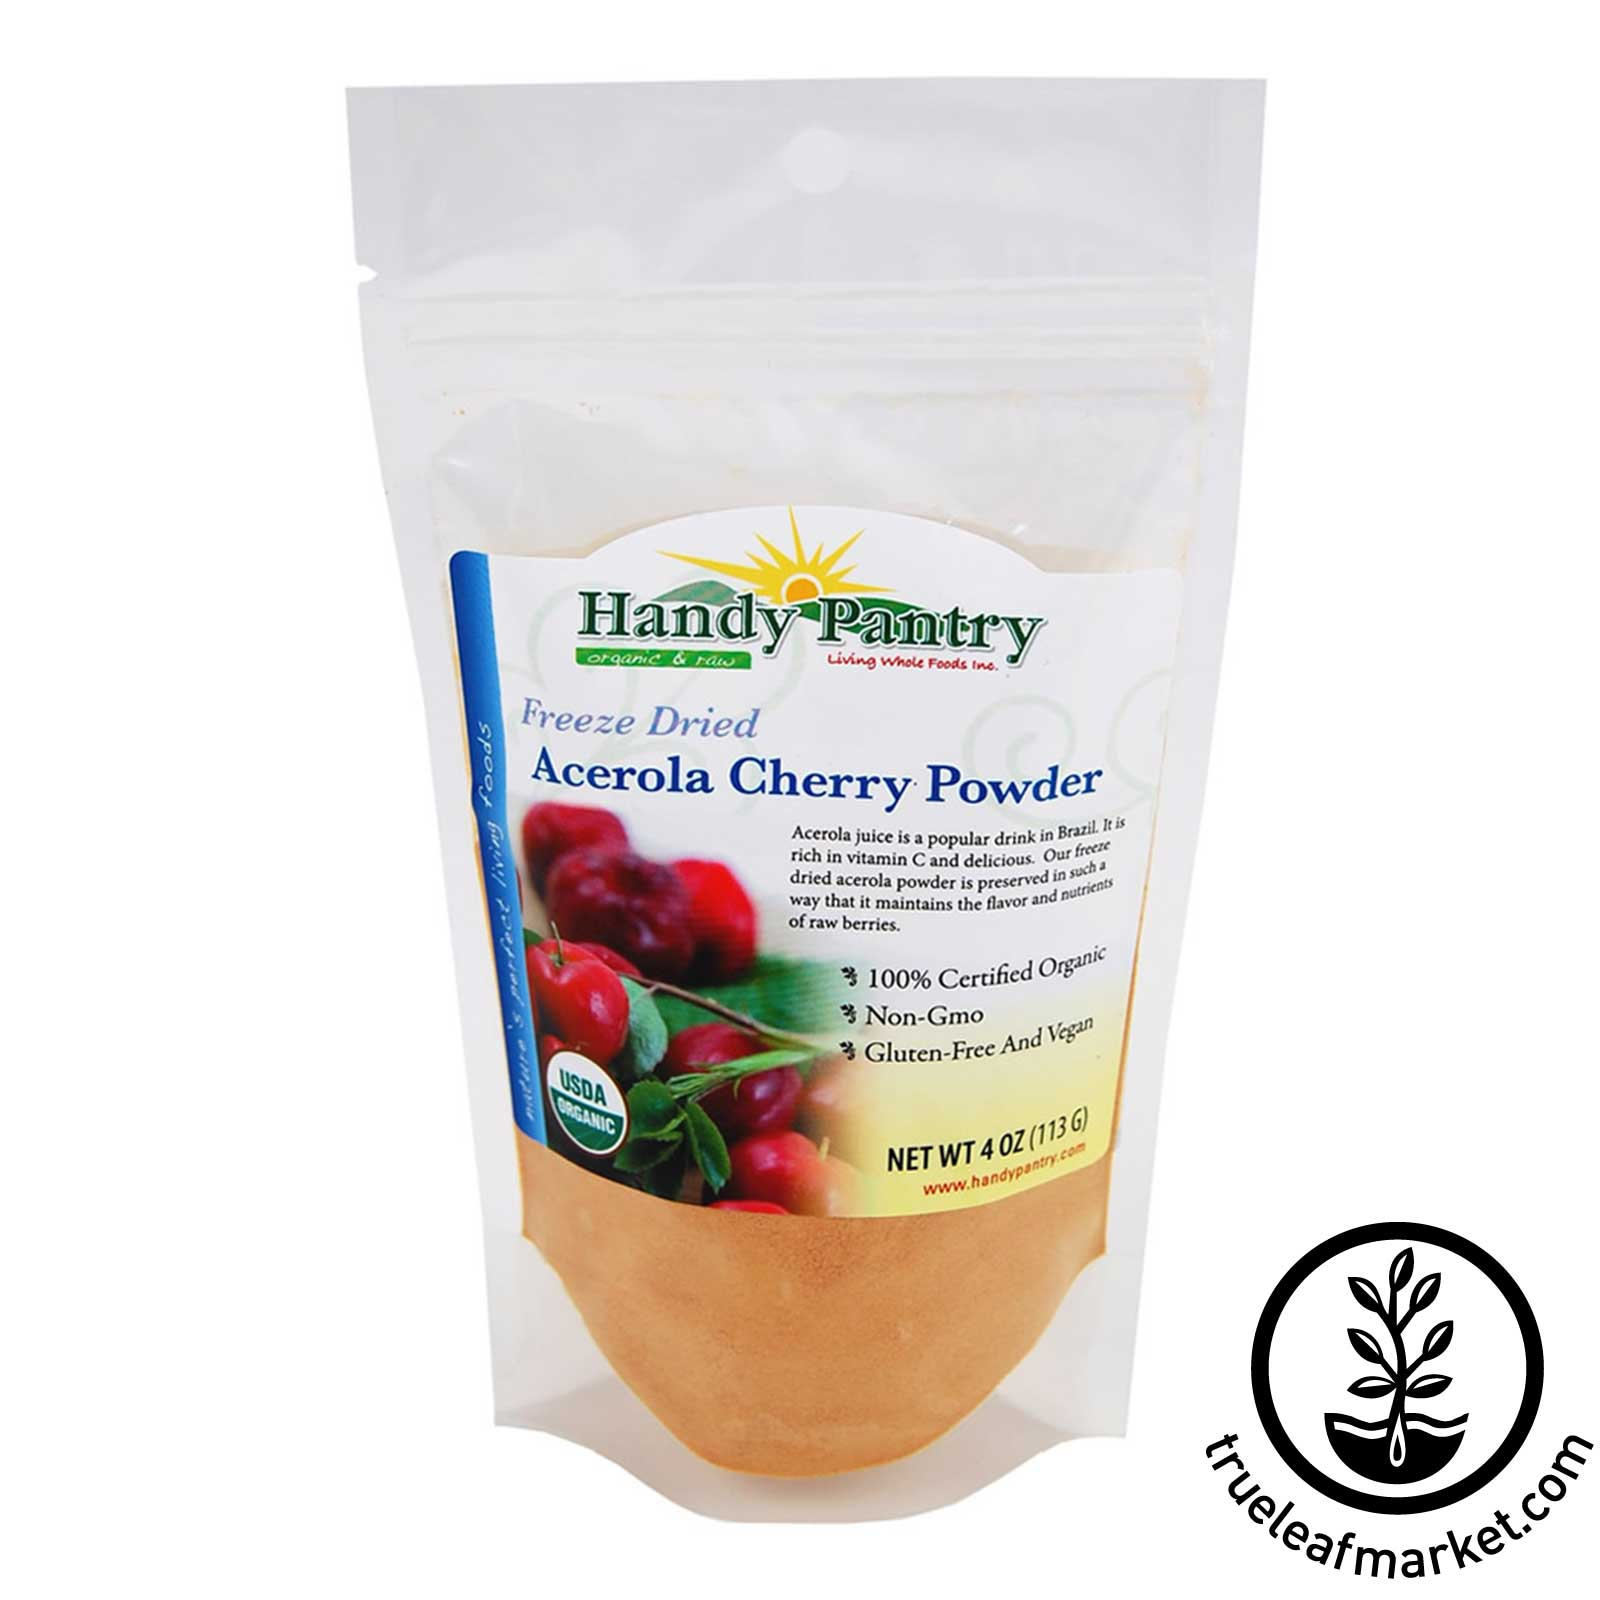 Freeze Dried Acerola Cherry Powder acerola cherry powder, organic powdered acerola cherry